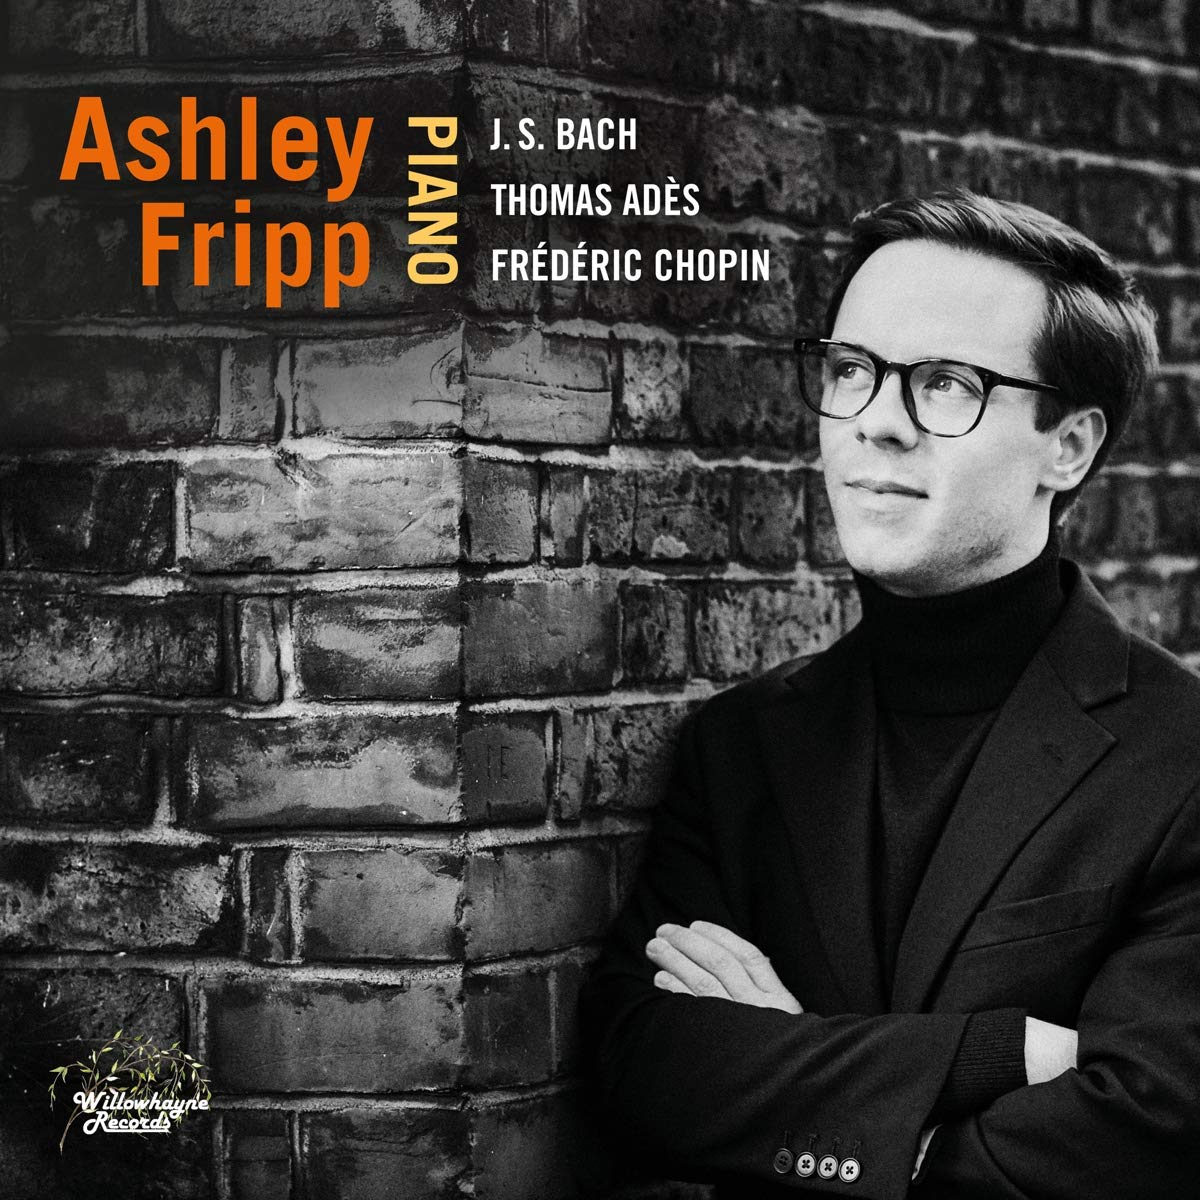 Ashley Fripp